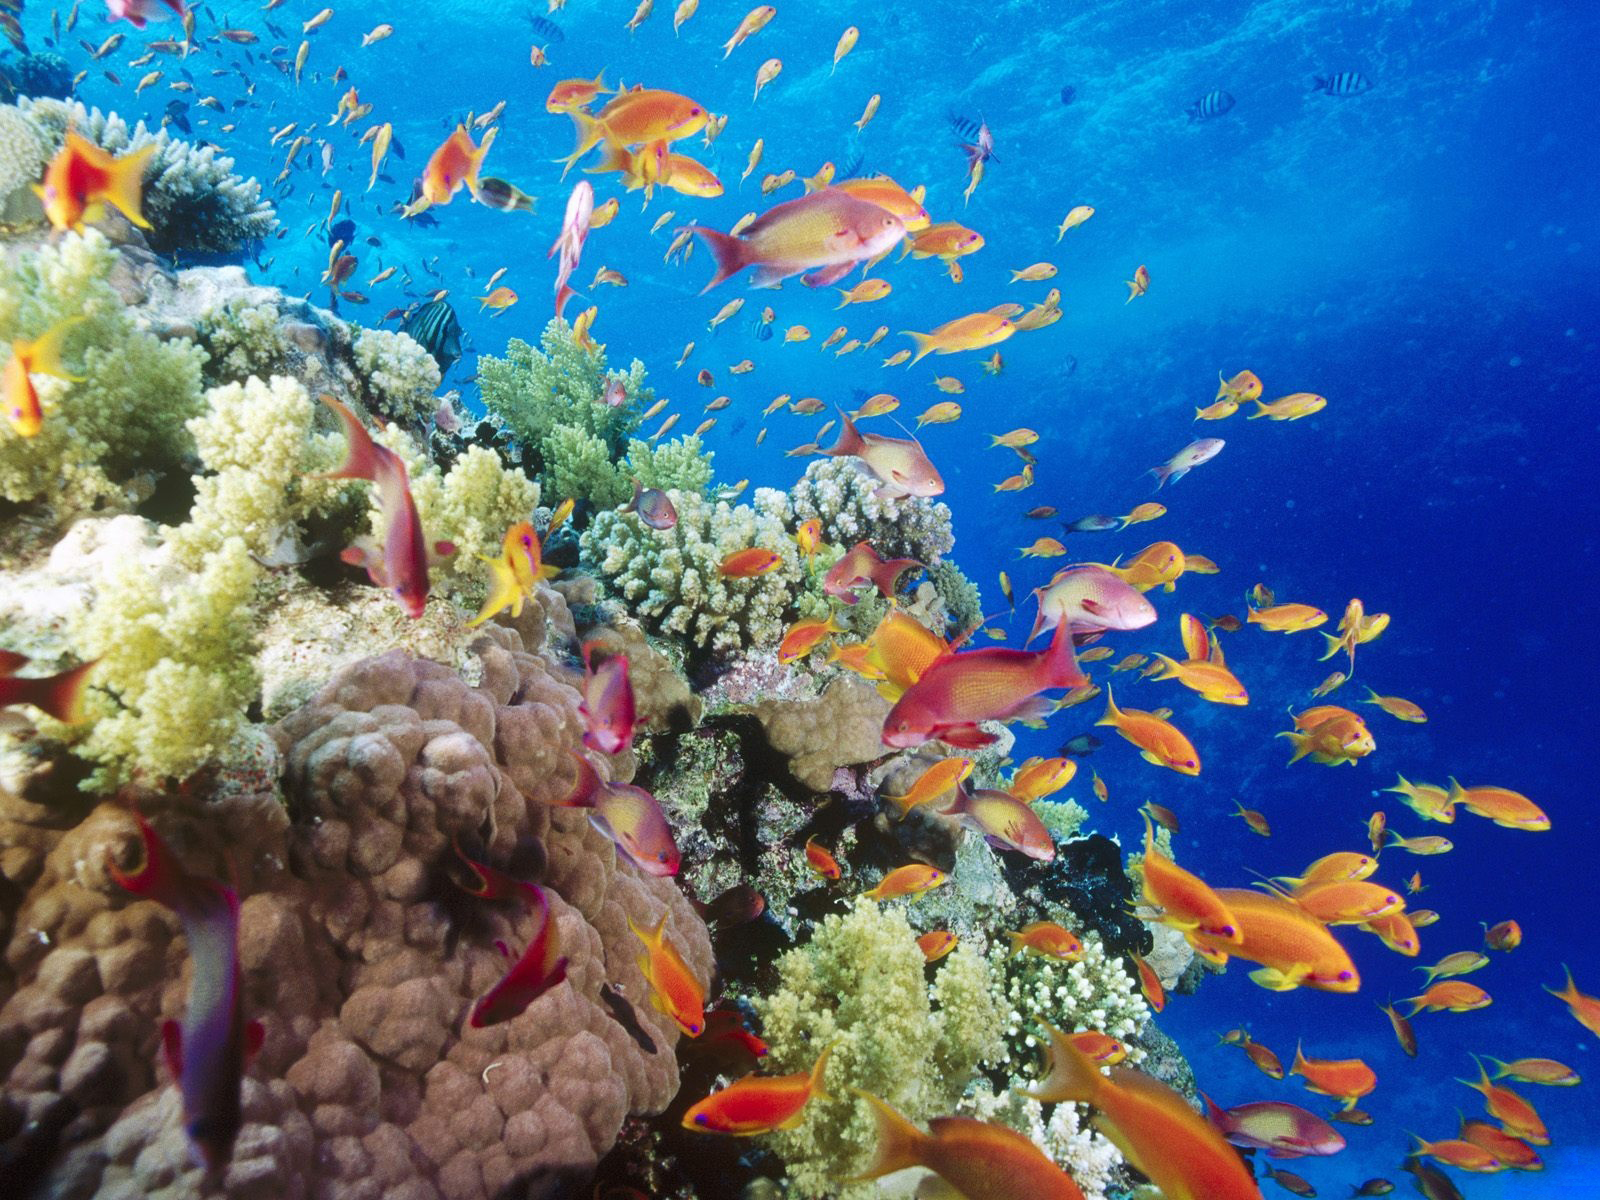 Underwater desktop wallpaper pictures wallpapersafari - Underwater desktop background ...